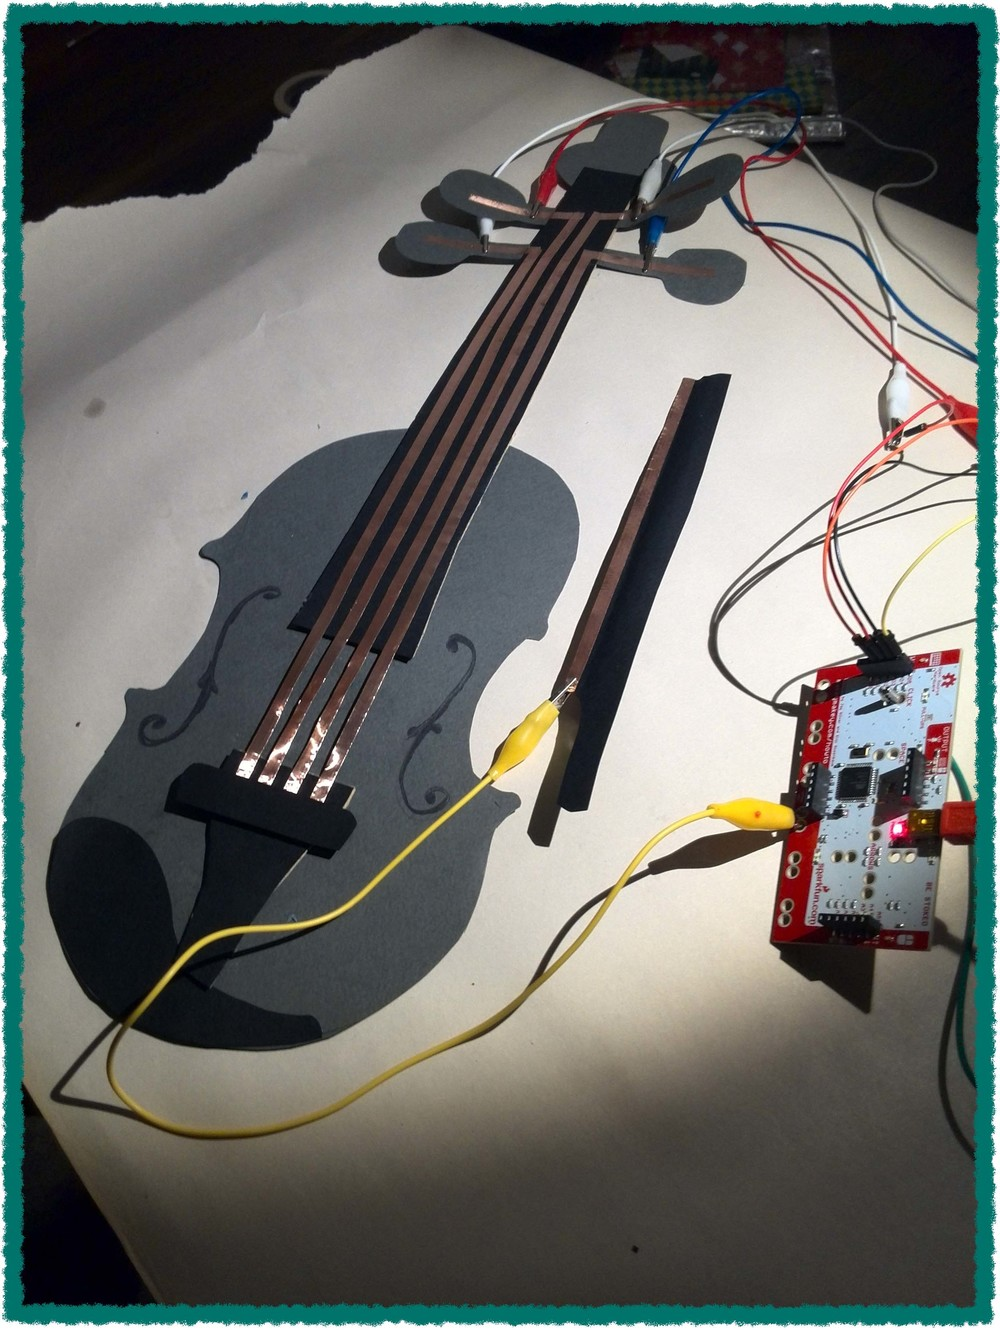 STEAM: Design, make and play your own musical instrument.